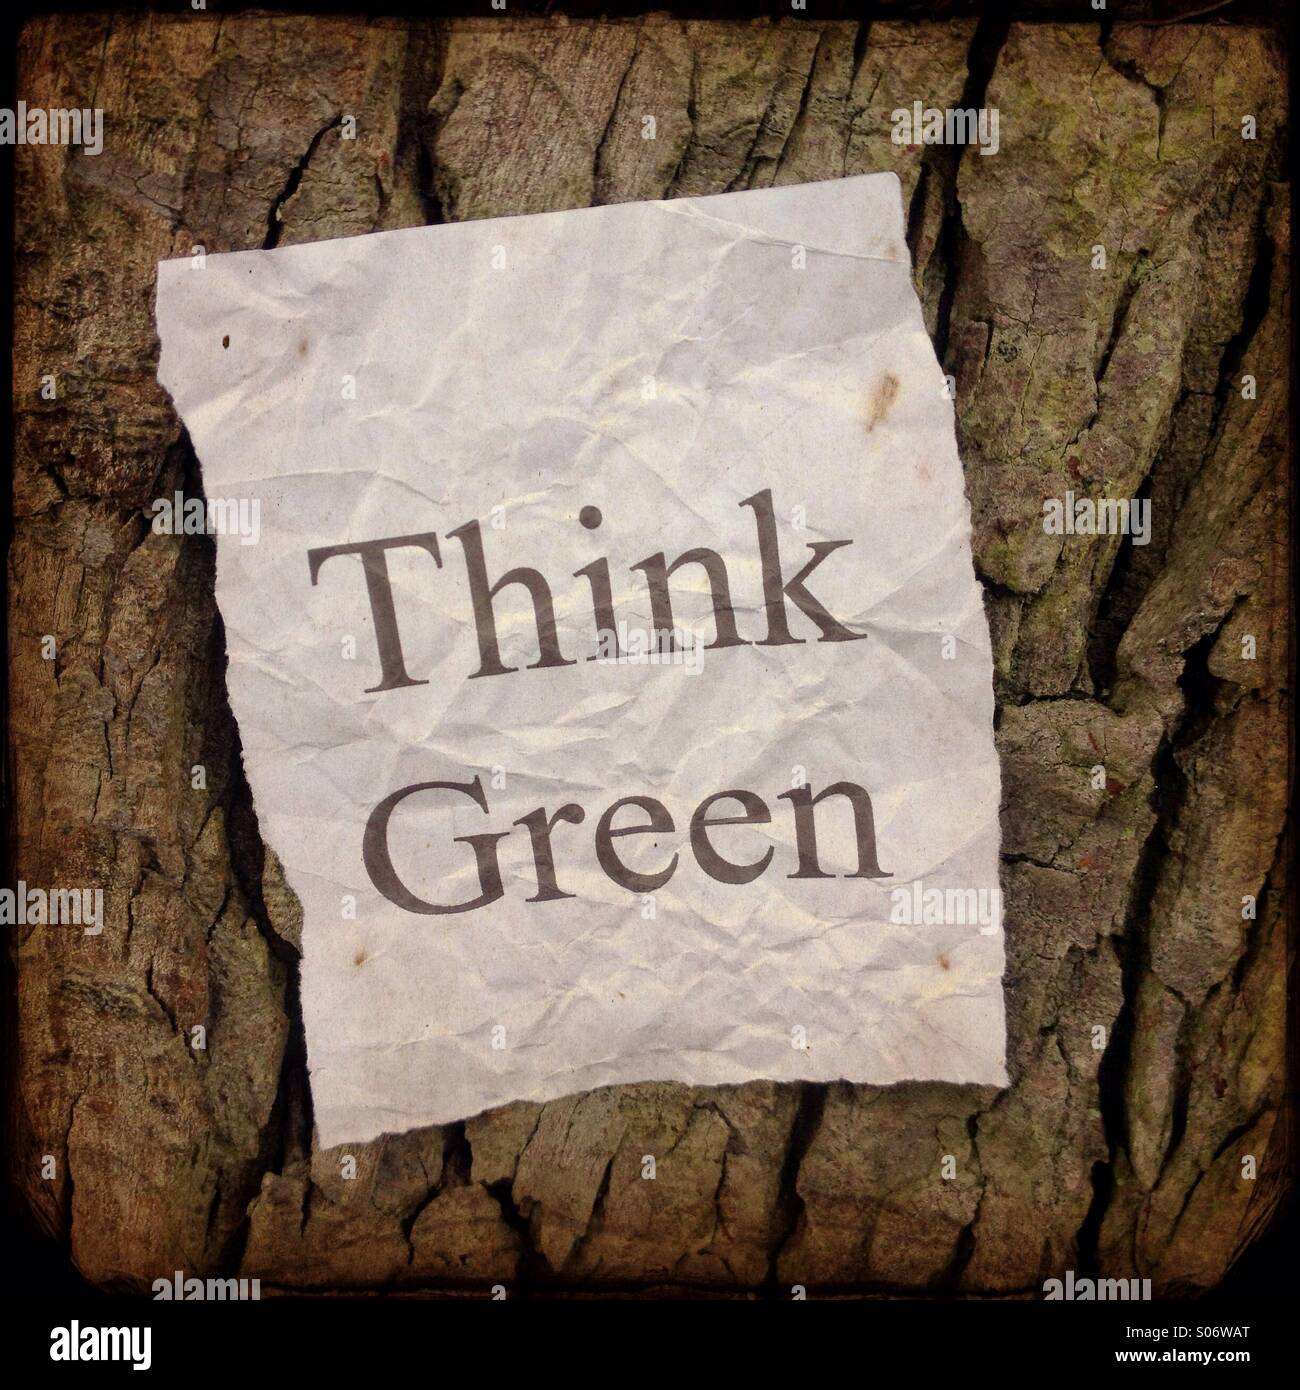 Tree borers amp bark beetles arborx tree health care - Think Green Message On A Crumpled Paper Notice Posted On Tree Bark A Reminder For